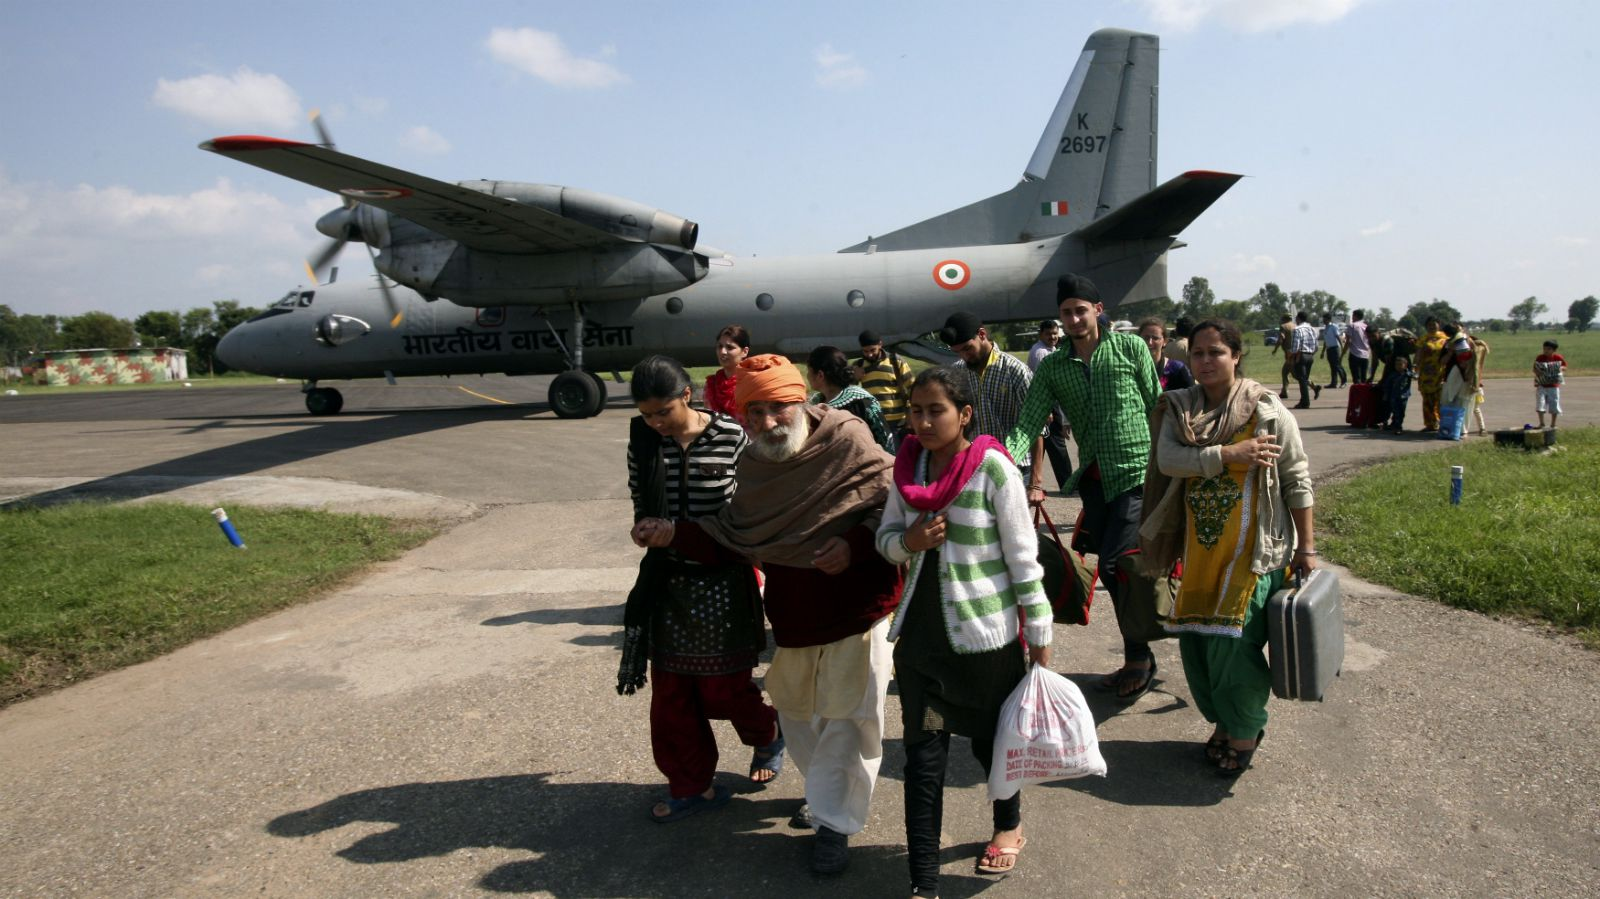 People, who were evacuated from flood-affected areas of Srinagar city, walk past an Indian Air Force AN-32 aircraft at an airport in Jammu September 9, 2014. The heaviest rains to fall on Kashmir in 50 years caught Indian and Pakistani authorities off guard, with criticism of their disaster preparedness growing on Tuesday as the number of dead hit 420 and thousands remained trapped on rooftops. On the Indian side of the heavily militarised de facto border that divides the Himalayan region, more than 2,000 villages and the city of Srinagar were submerged.